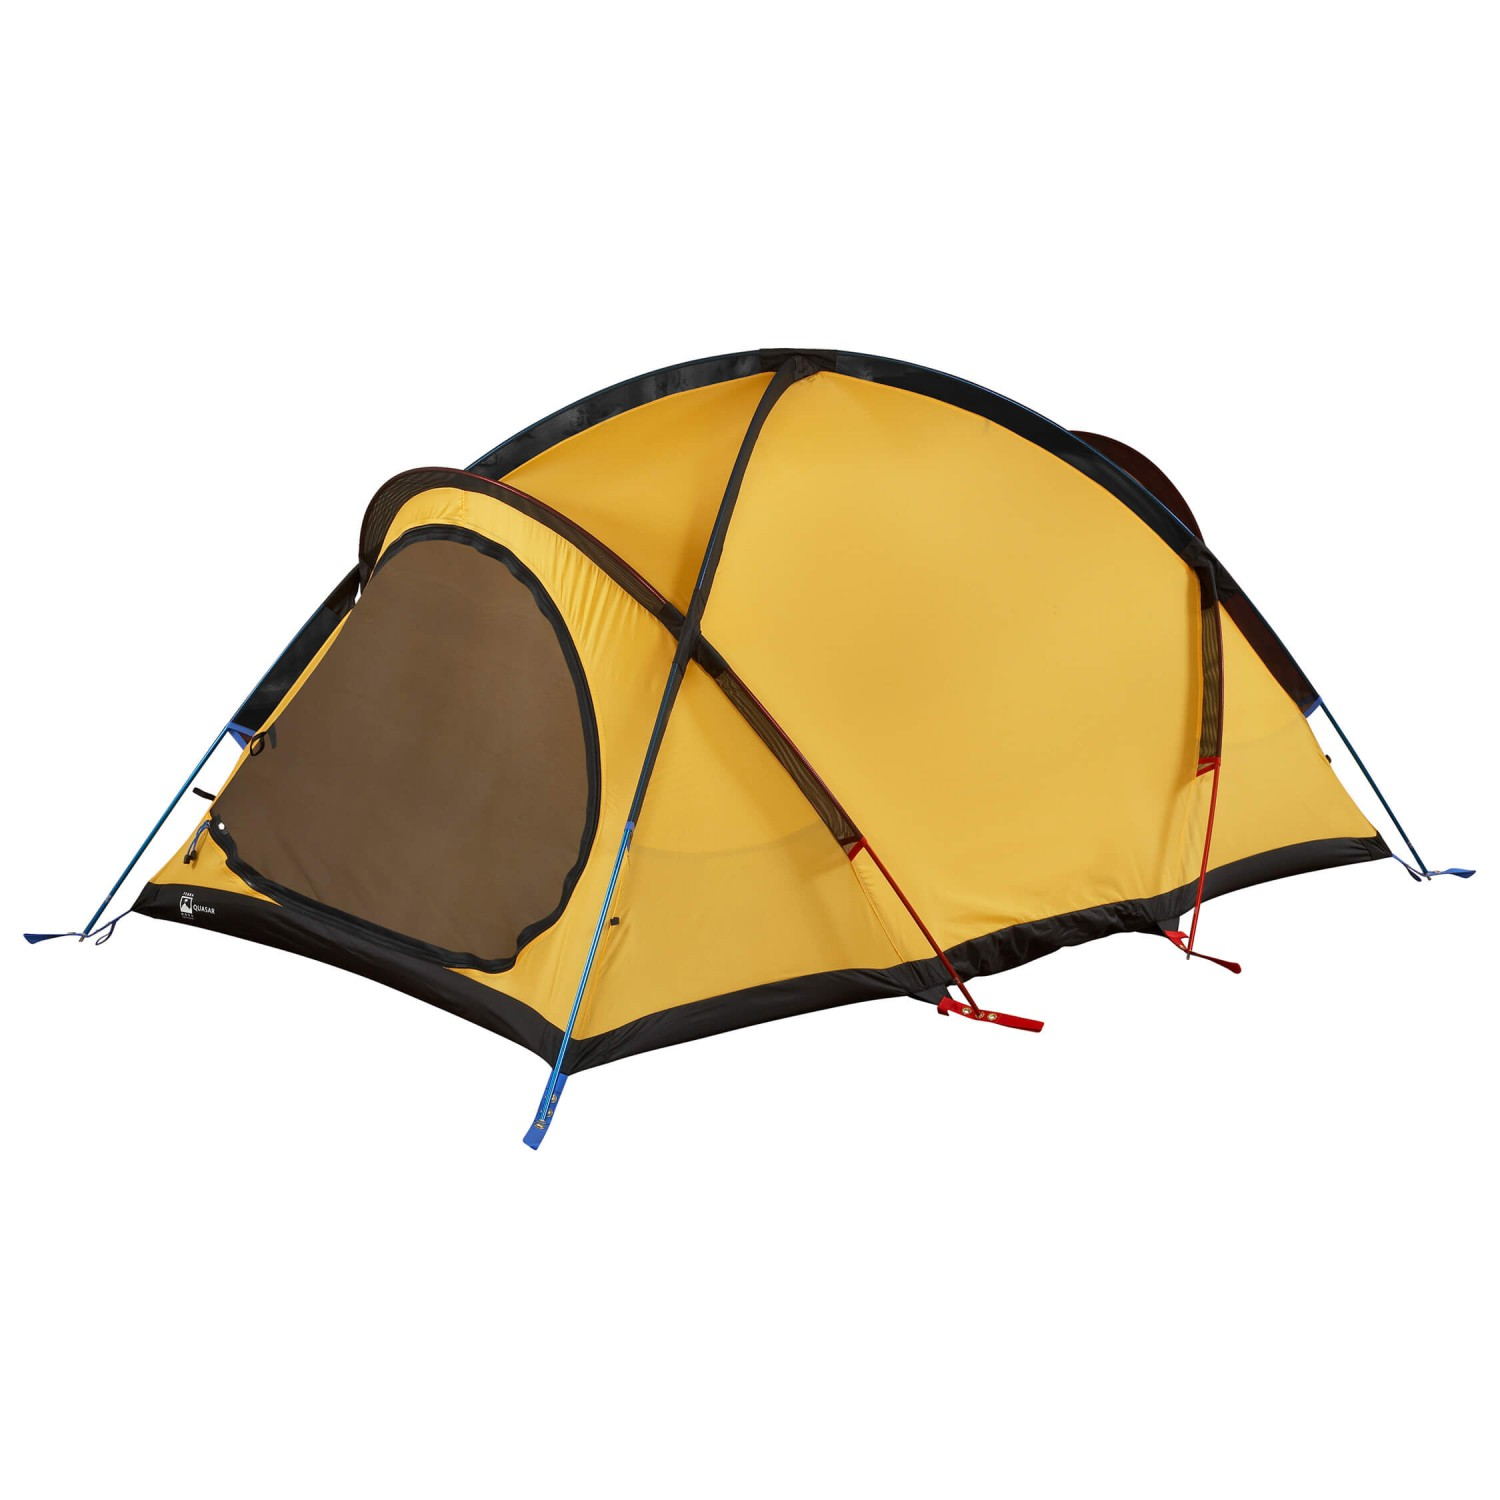 Terra nova quasar 2 person tent free uk delivery - Terras tent ...